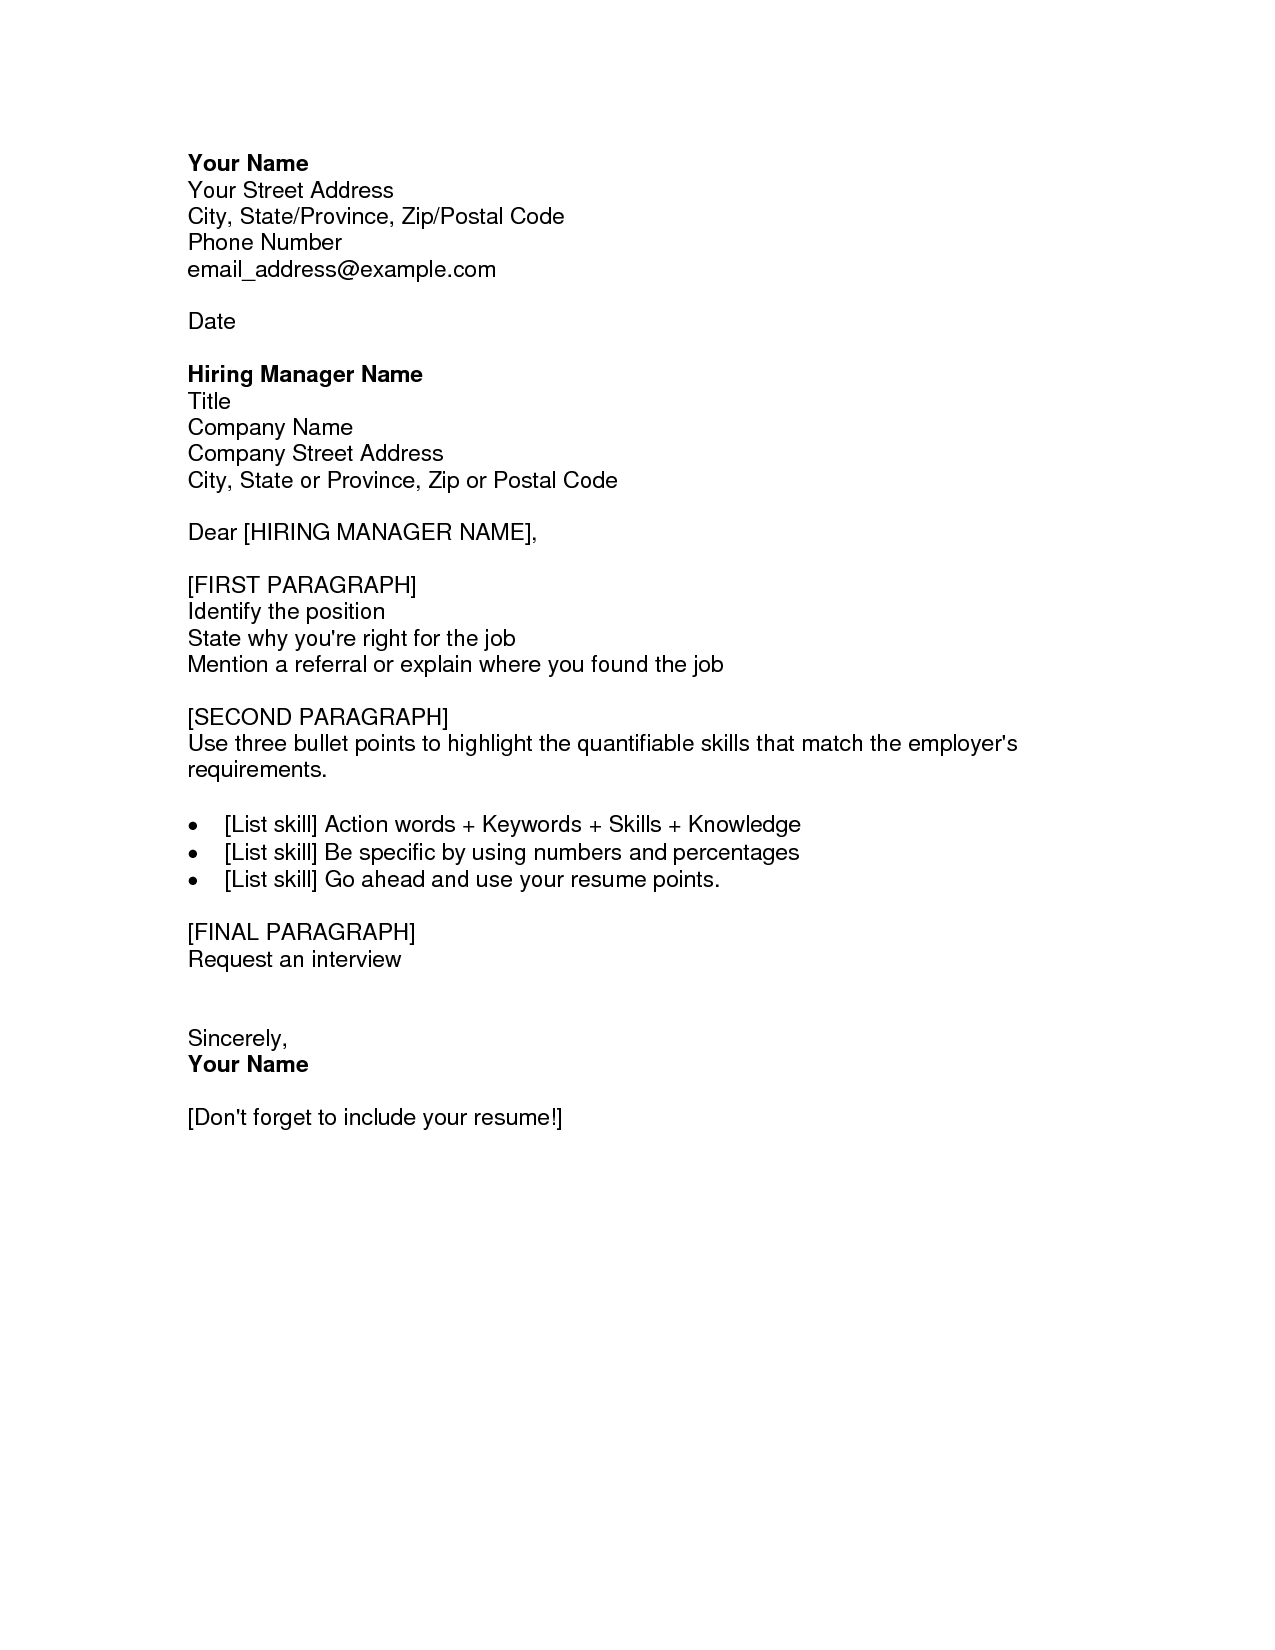 resume cover letter template - Cover Letter And Resumes